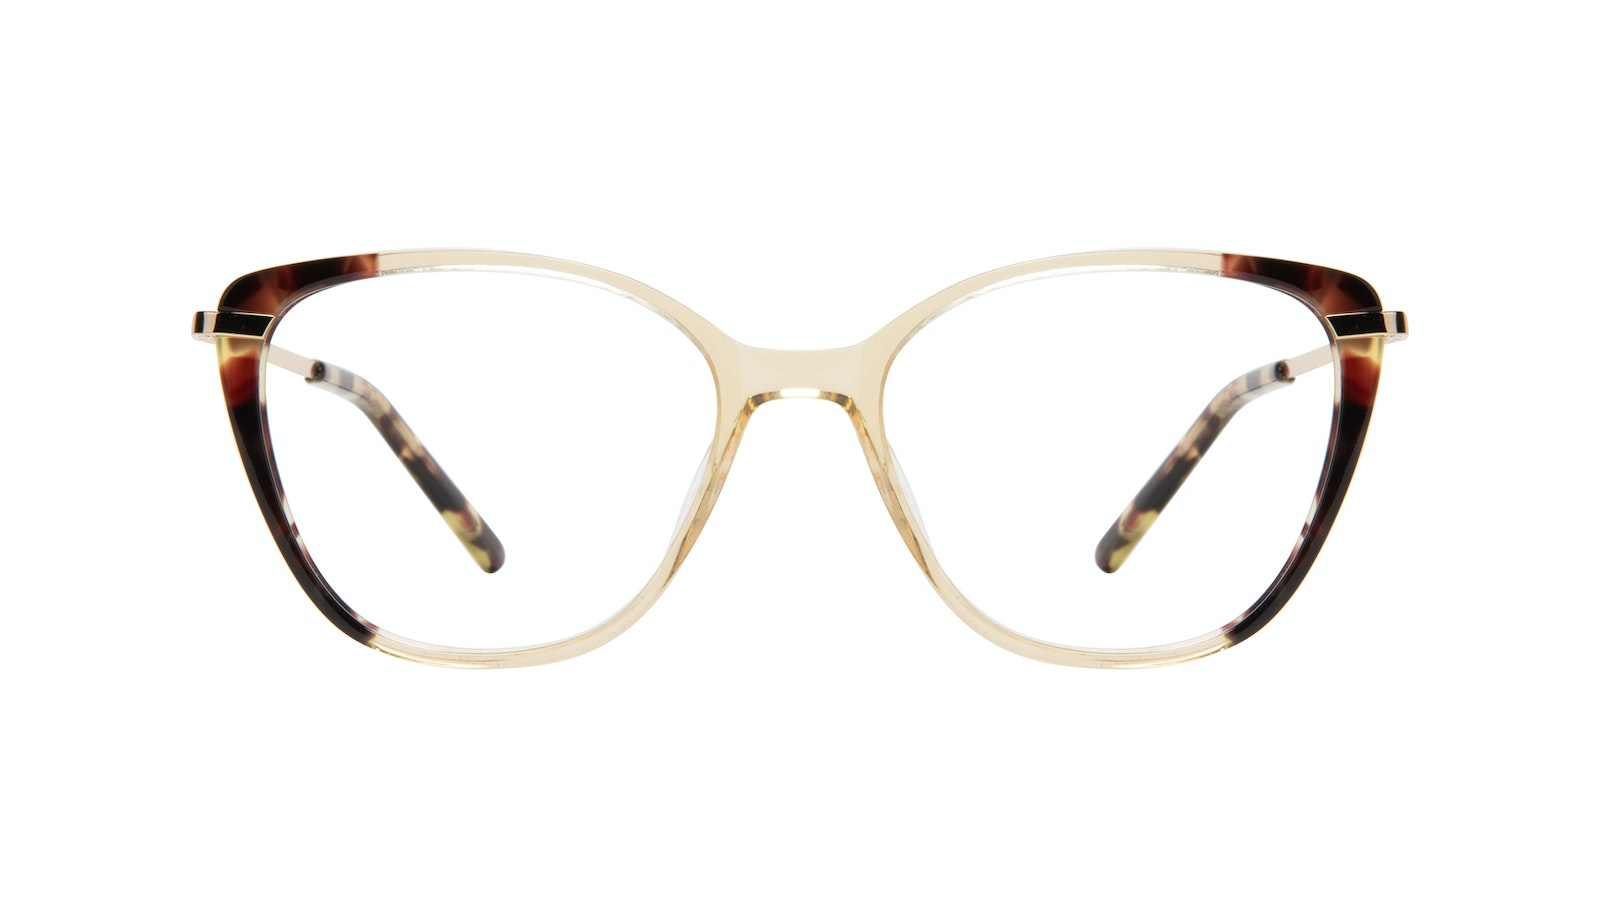 Affordable Fashion Glasses Rectangle Square Eyeglasses Women Illusion Golden Tort